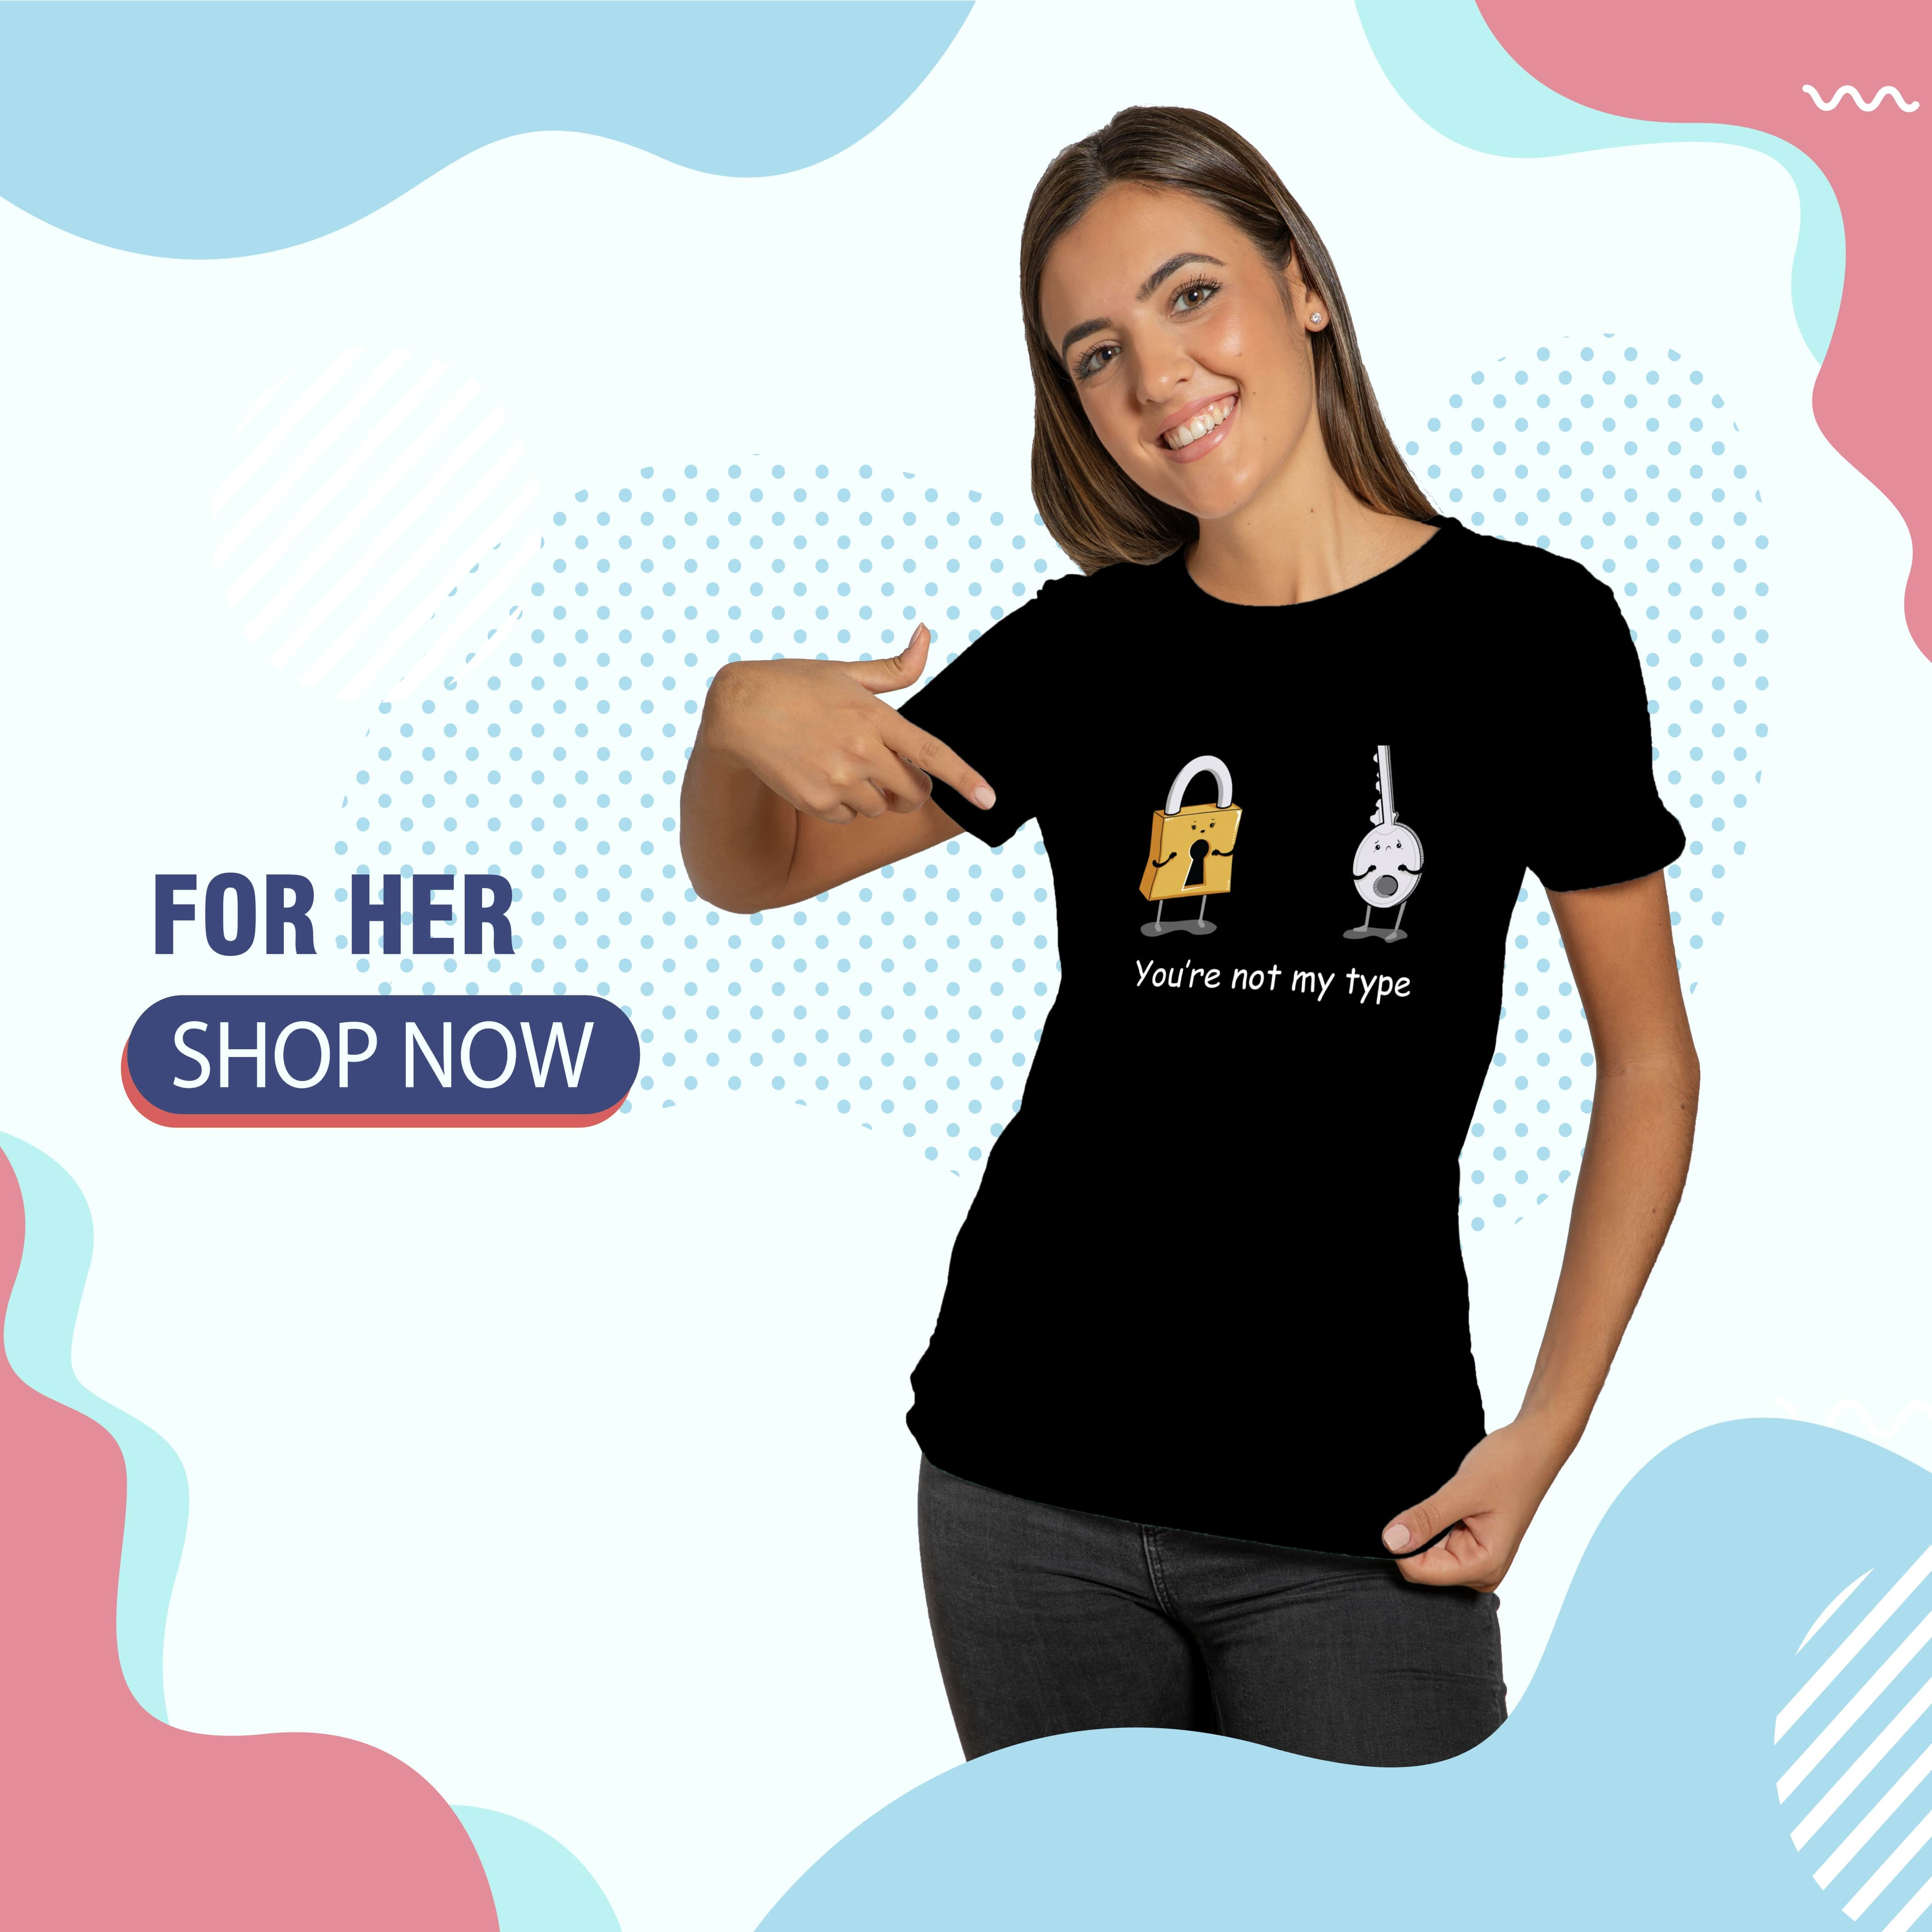 For Her T-shirts